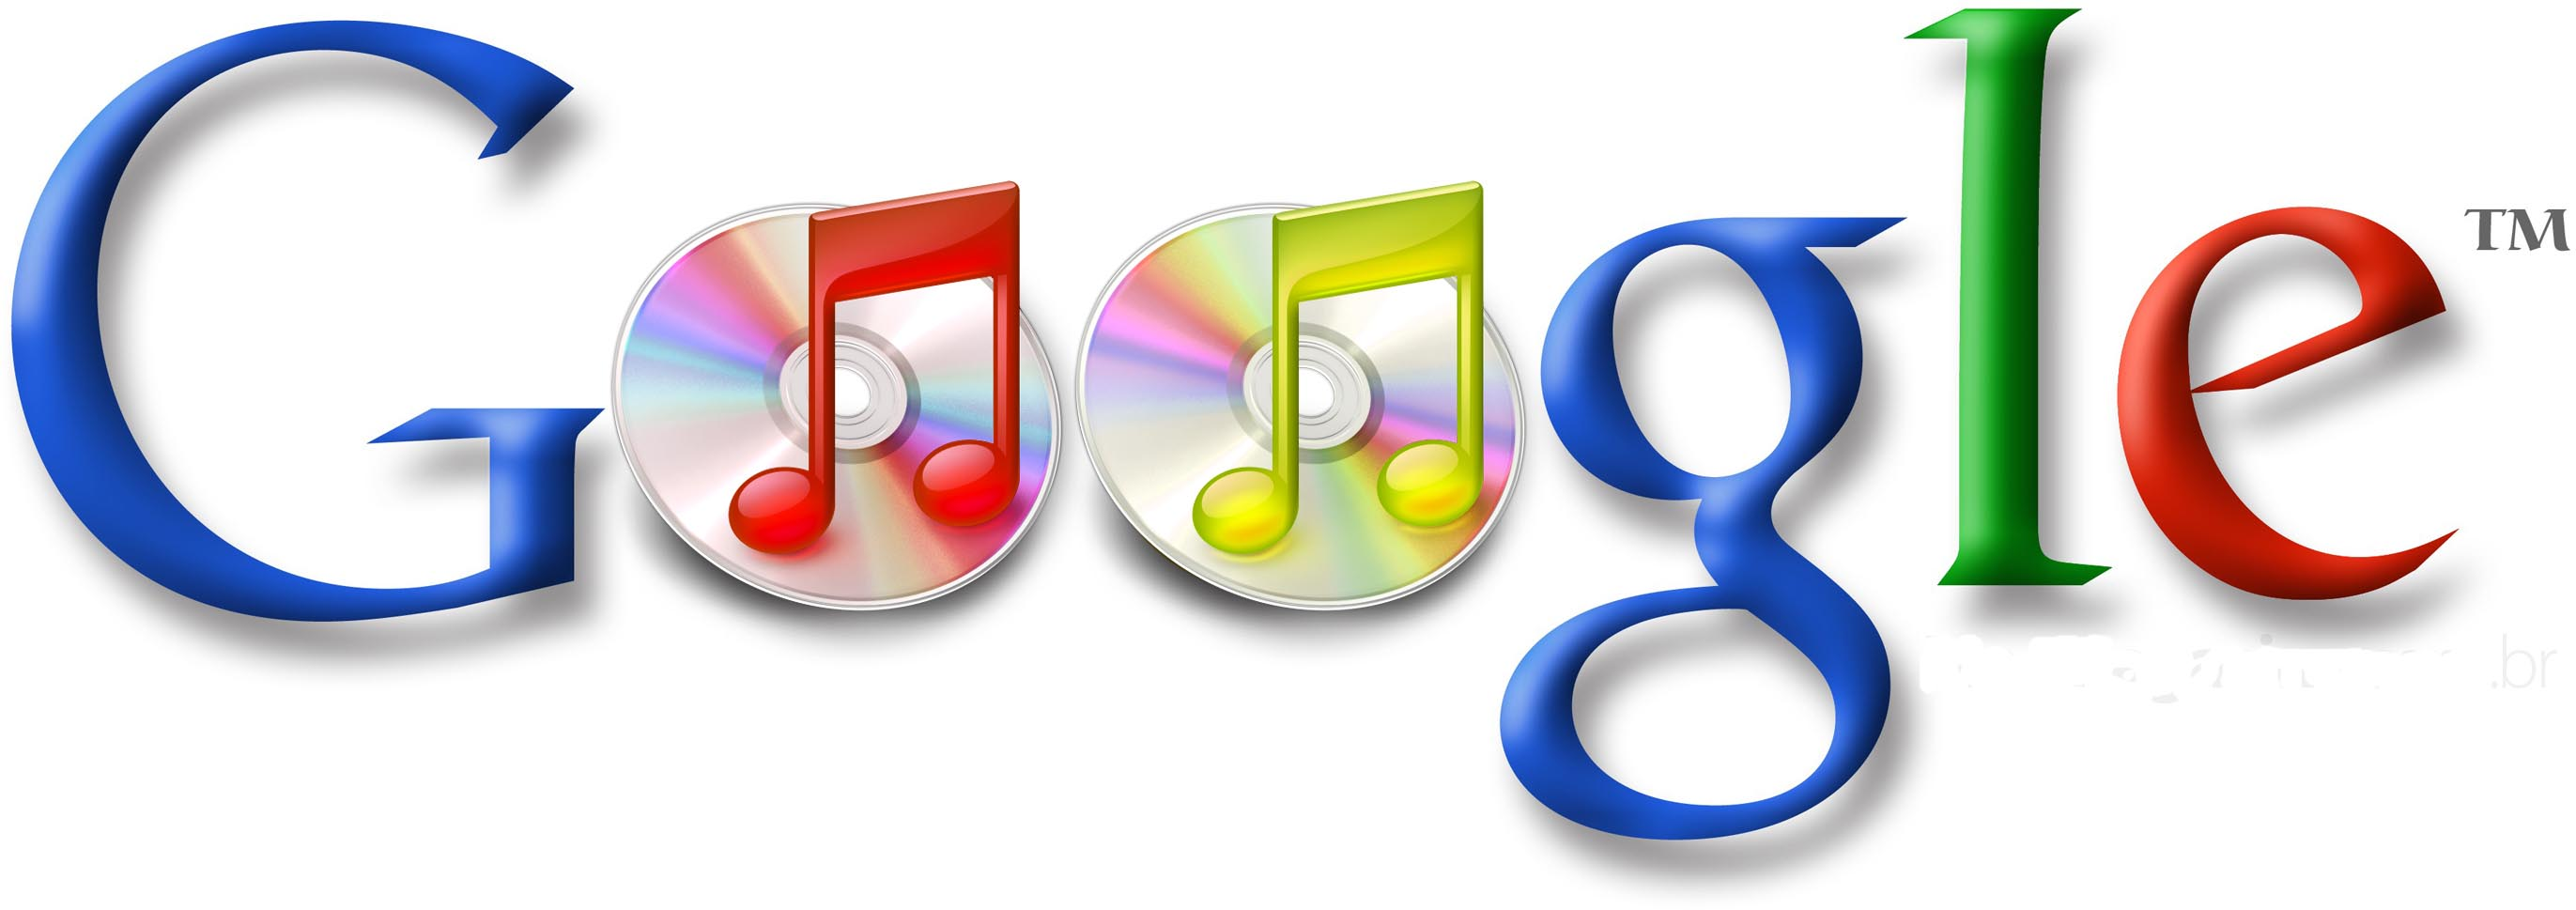 Google Set To Surpass Apple With Soon To Be Released Music Streaming Services